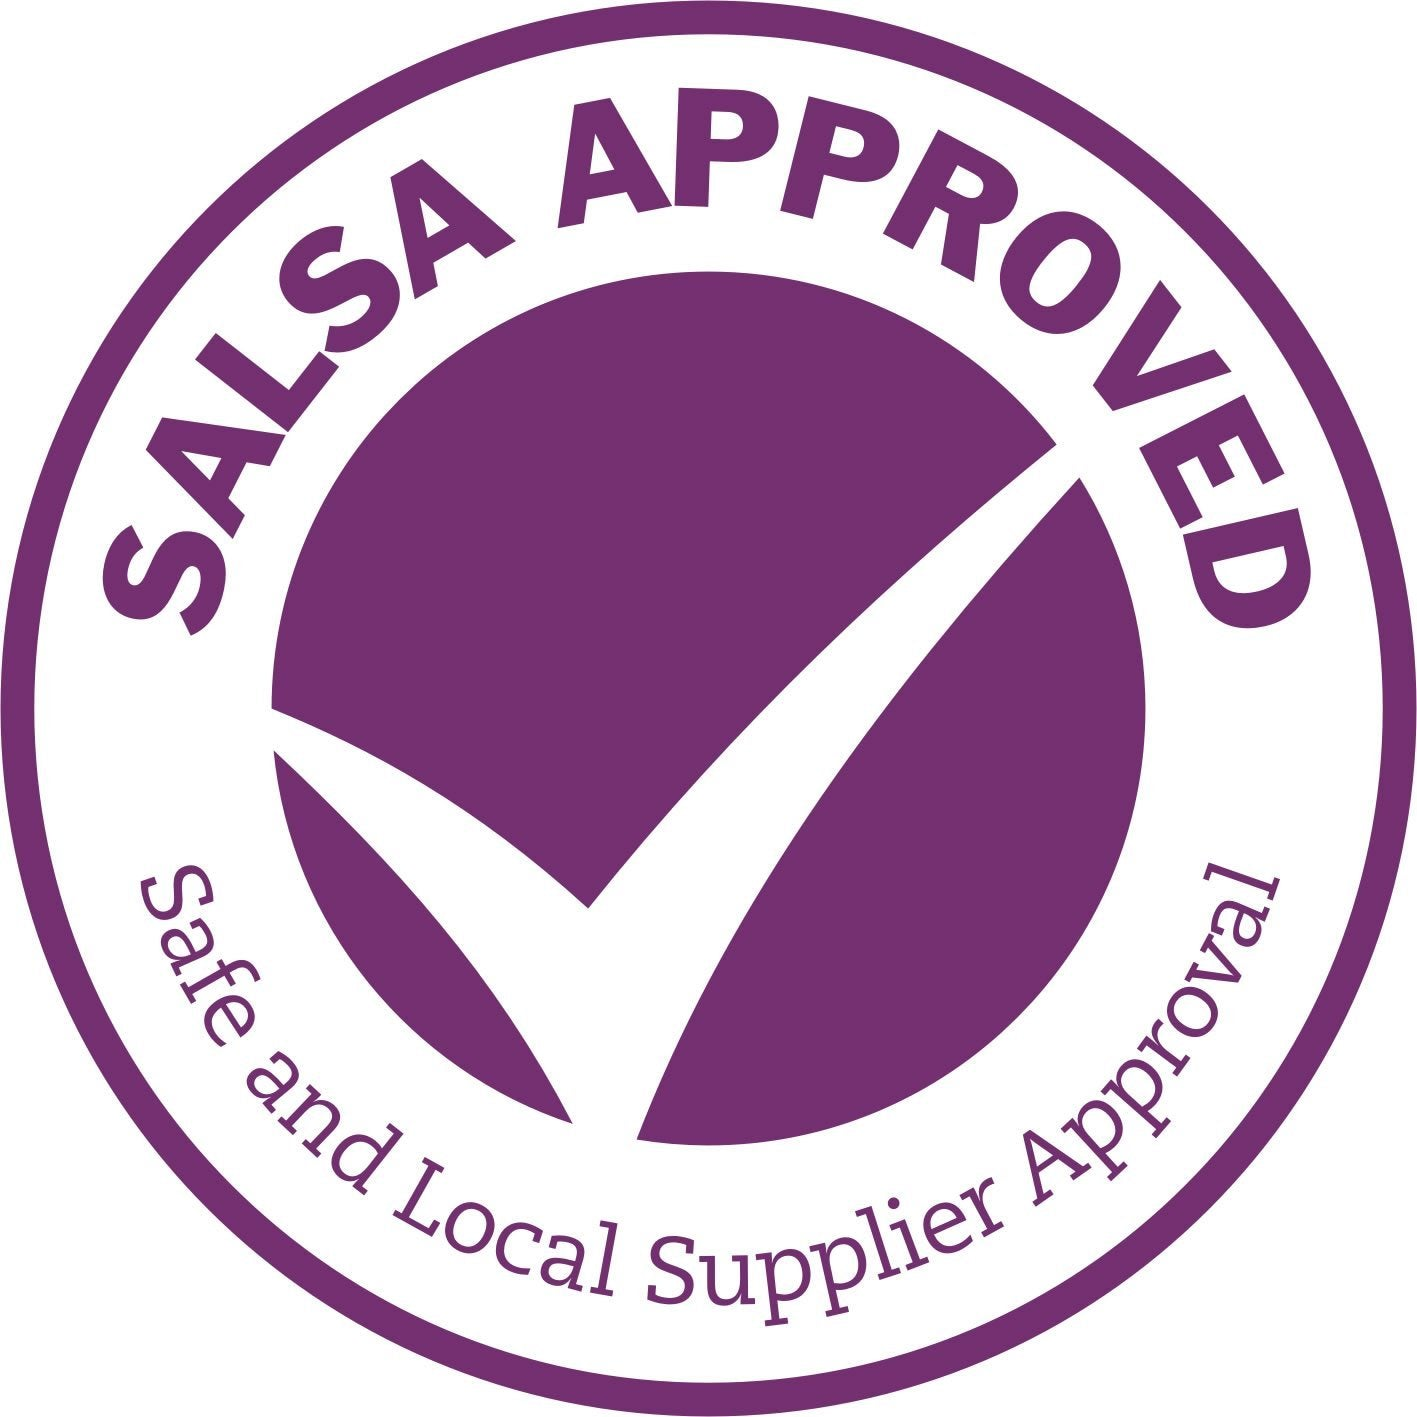 FireFly is SALSA Approved | FireFly Barbecue